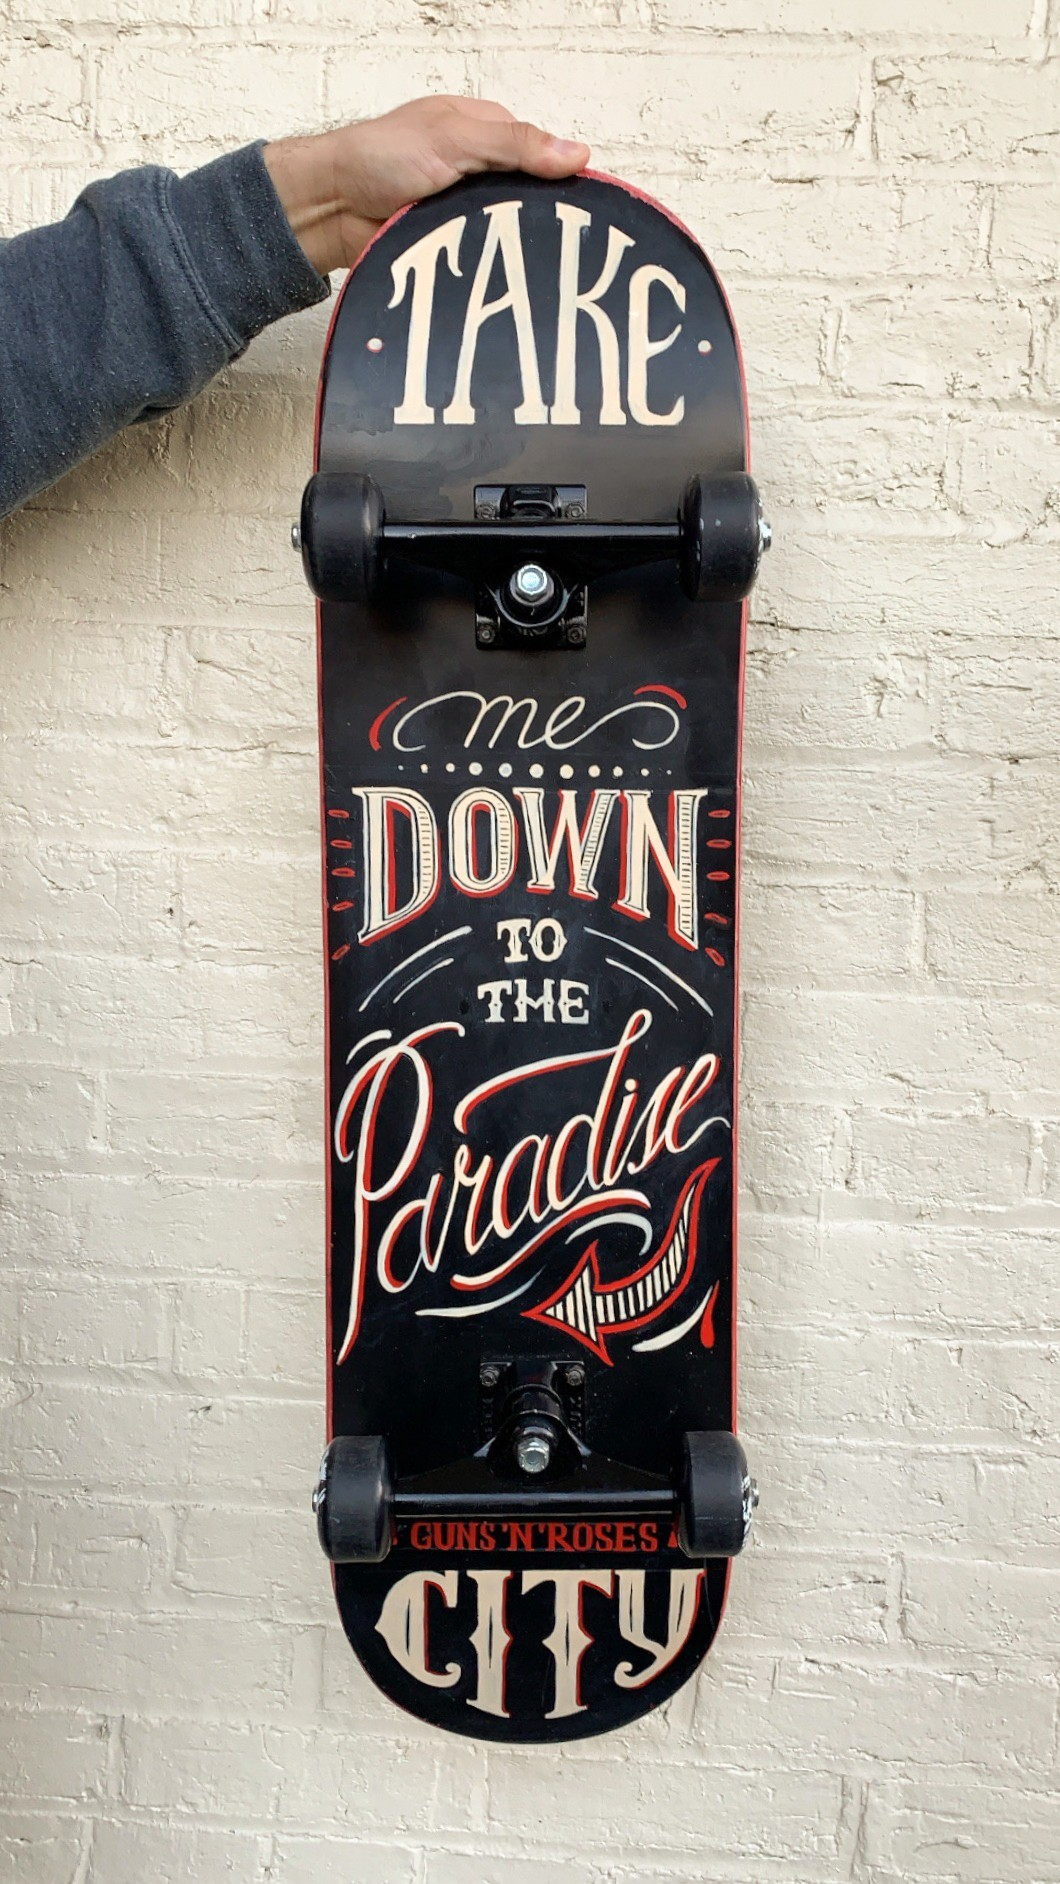 A phrase, hand lettered on the skateboard says 'Take me back to the Paradise city' and shows a variety of lettering styles.